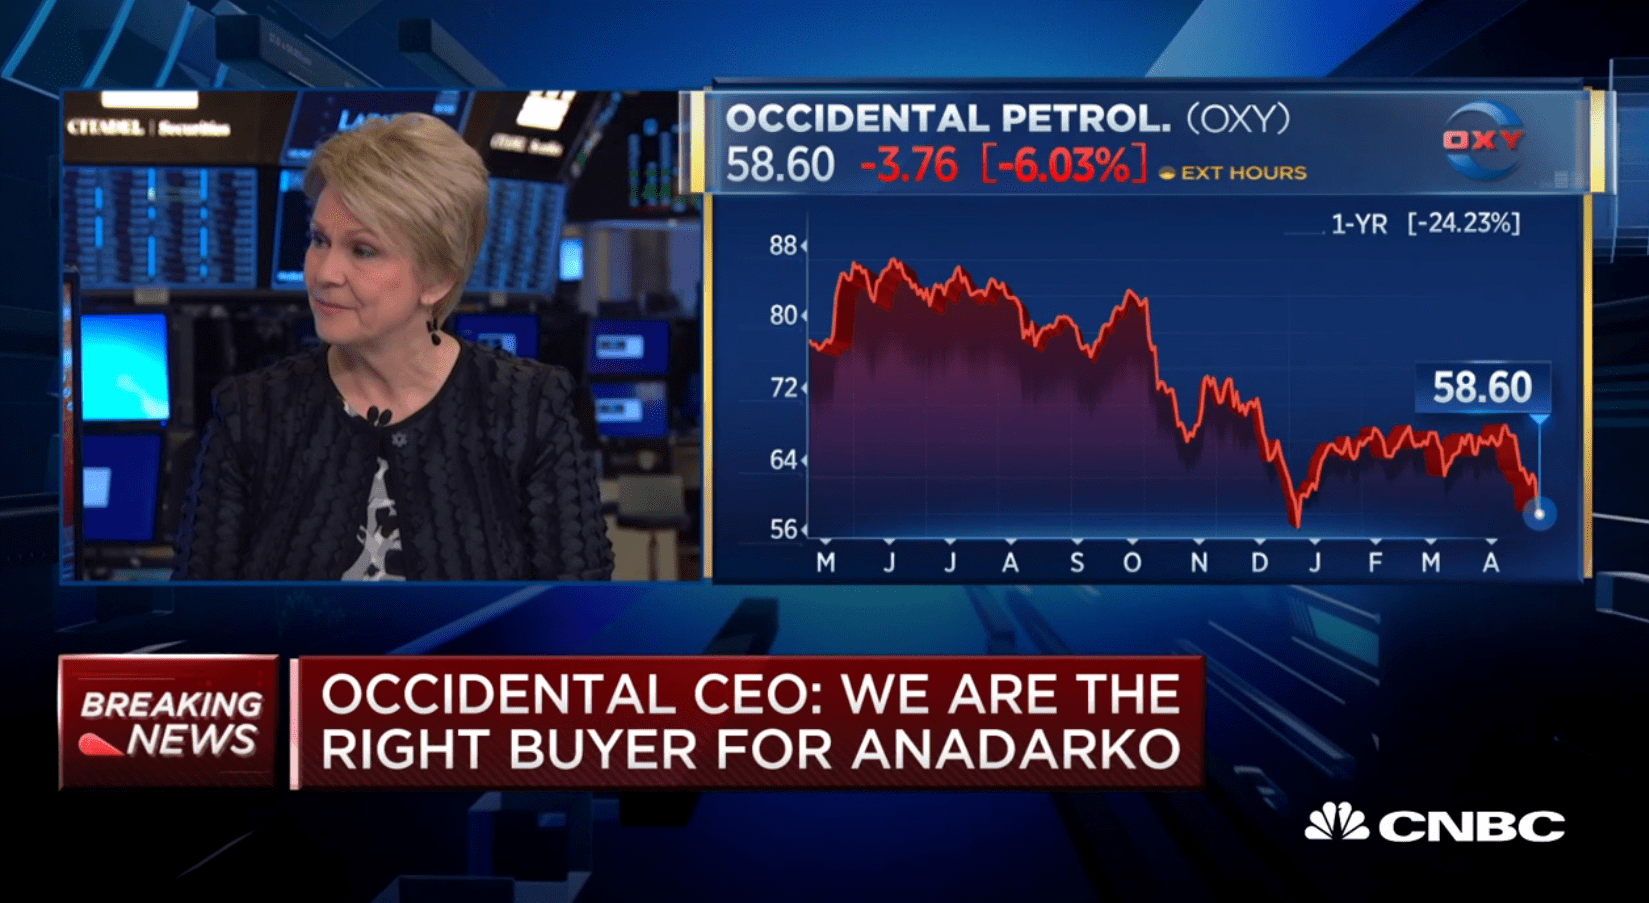 Occidental Petroleum CEO Vicki Hollub Speaks with CNBC's David Faber Today